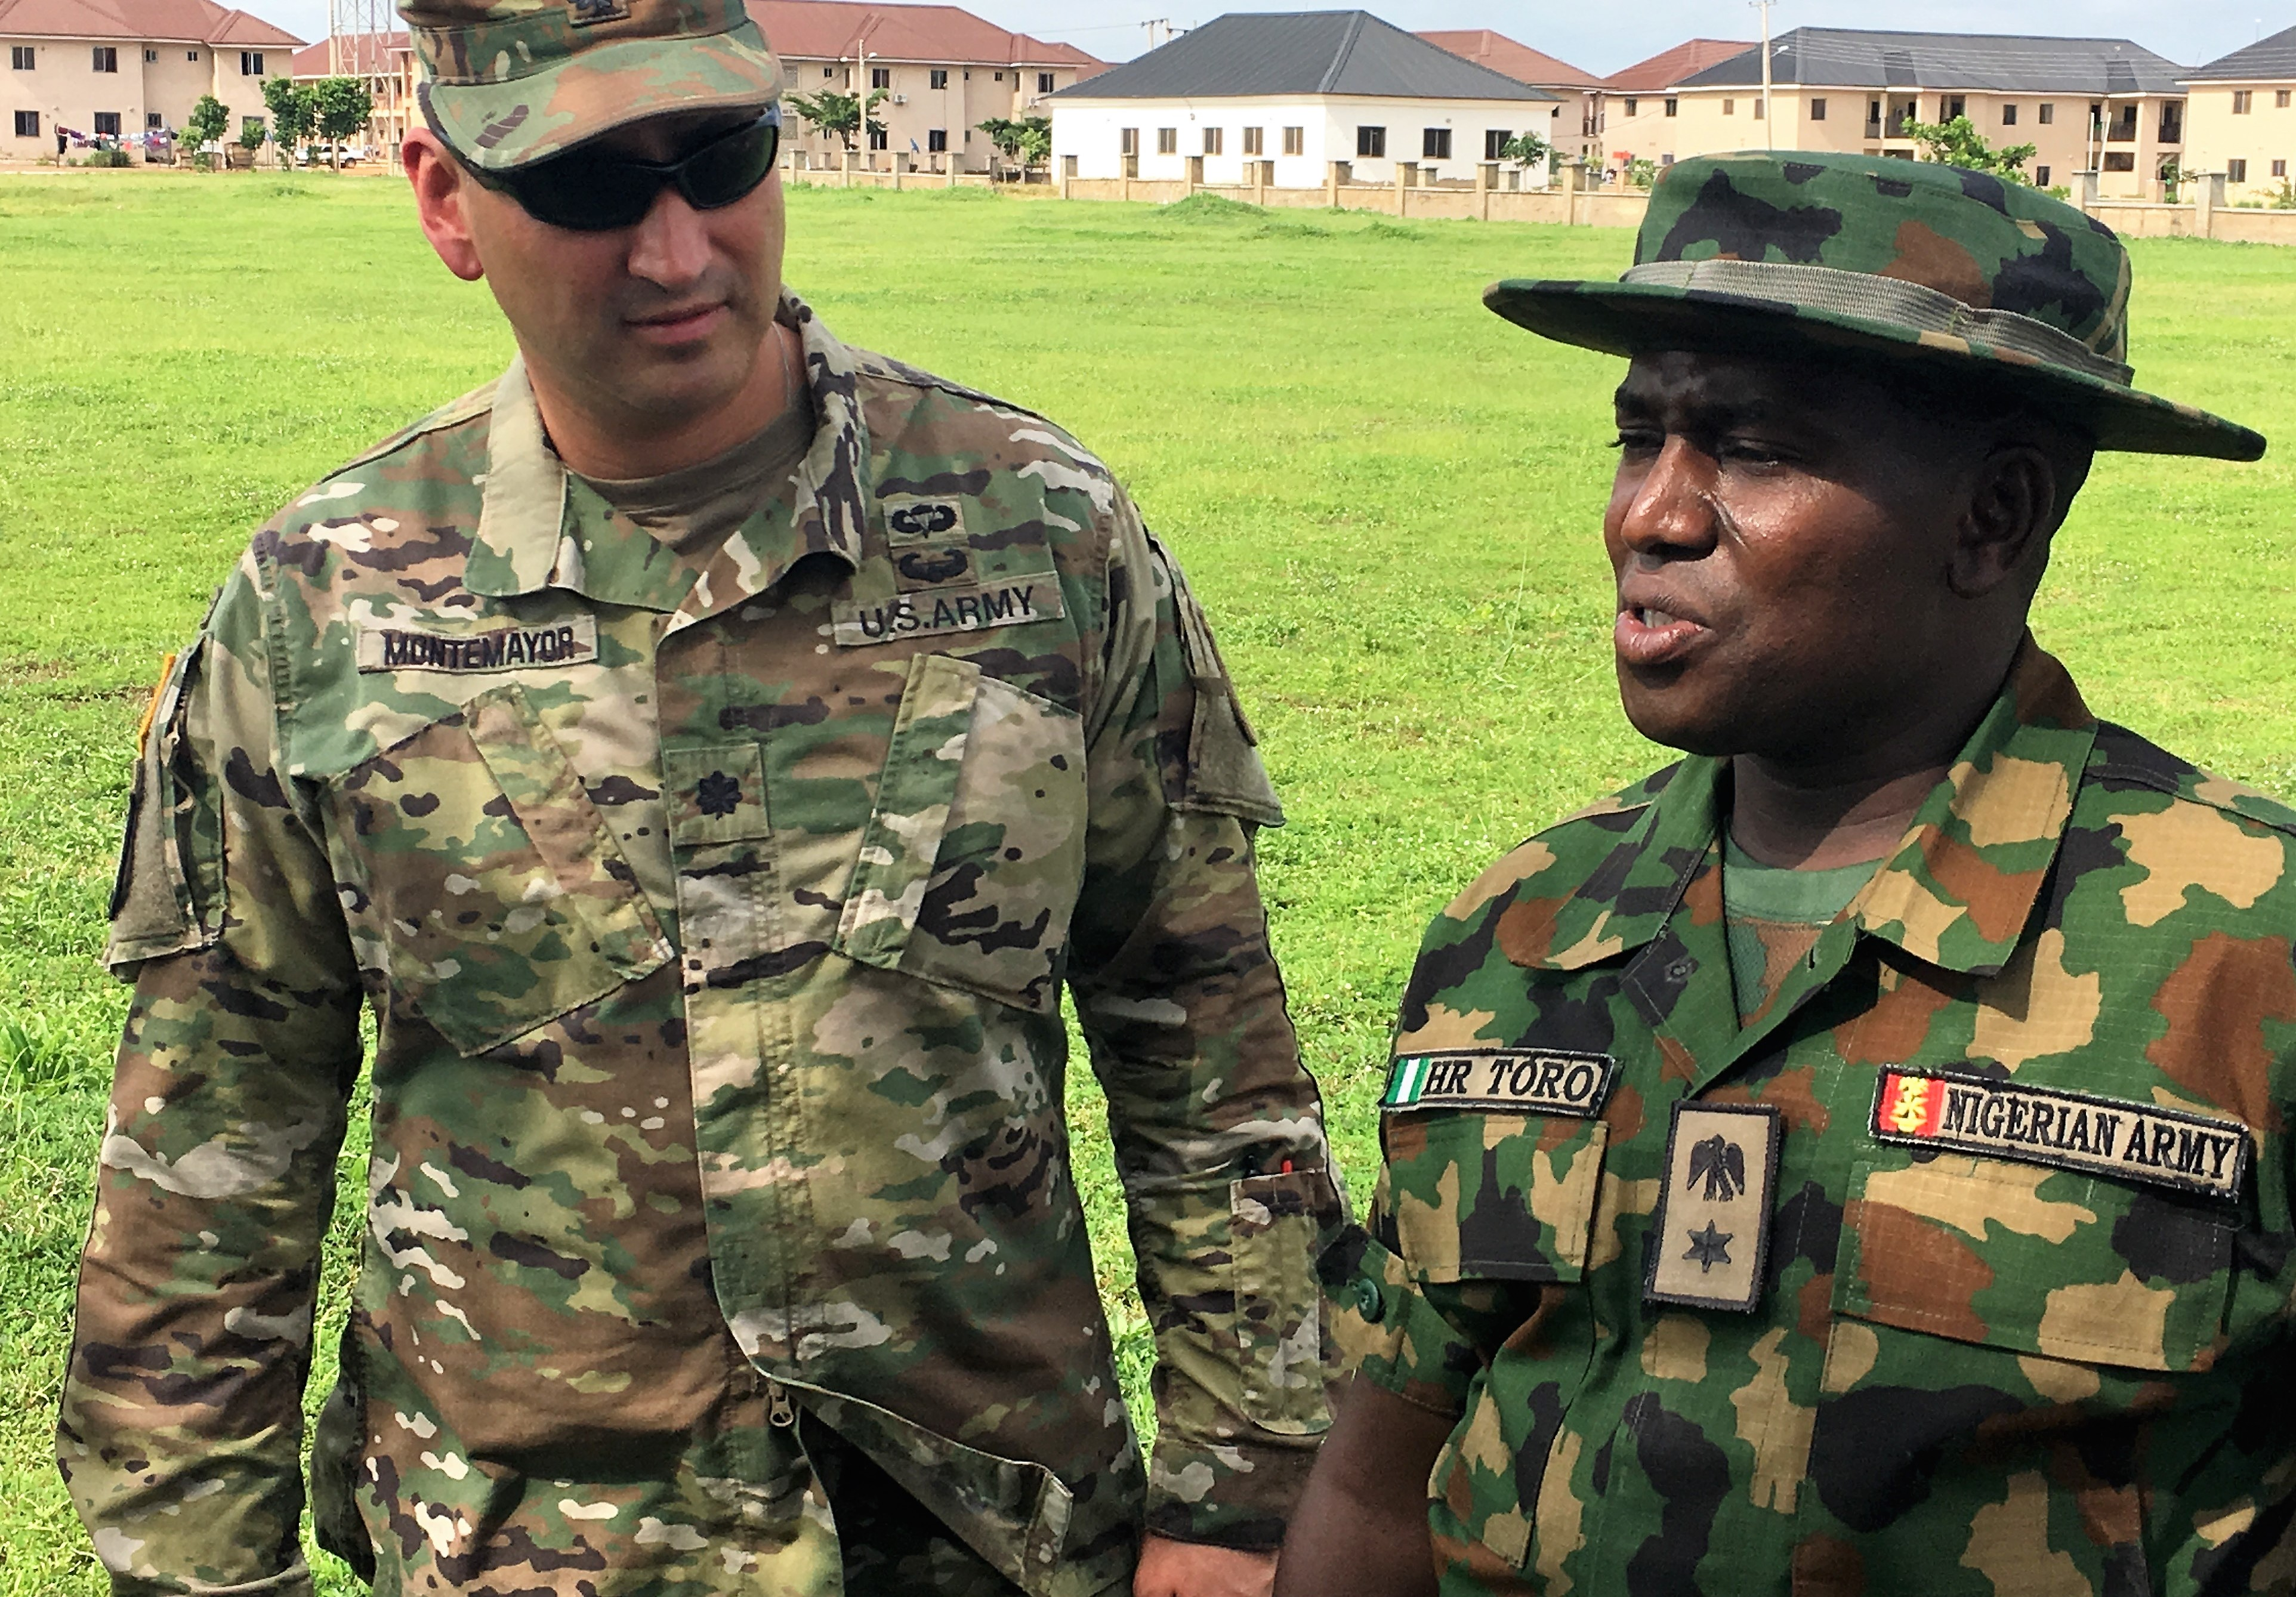 African Land Forces Summit 2018 lead planner, Lt. Col. Hector Montemayor (left) and Lt. Col. Husaini Toro, 176th Guards Battalion commander discuss site options for the summit's military demonstration in Abuja.  ALFS is a weeklong seminar designed to give African land force's chiefs an opportunity to discuss and develop solutions for improving security and stability in their home country. (Photo by Capt. James Sheehan)